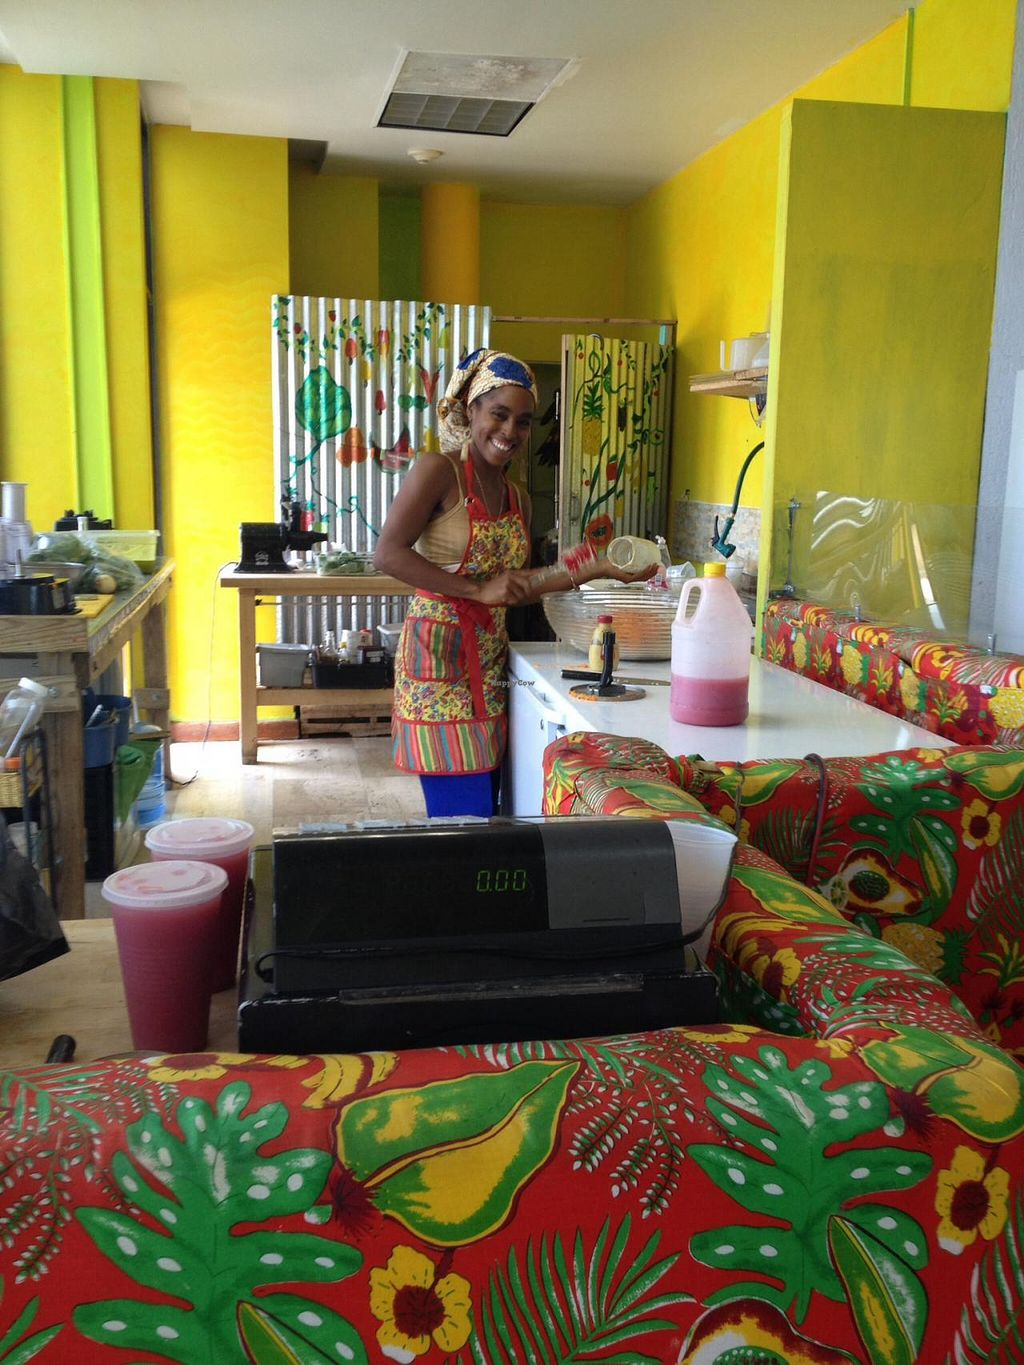 """Photo of CLOSED: Back-2-Live Cafe Living Delight  by <a href=""""/members/profile/Janelle"""">Janelle</a> <br/>Chef India at work! :) <br/> May 19, 2015  - <a href='/contact/abuse/image/44320/102761'>Report</a>"""